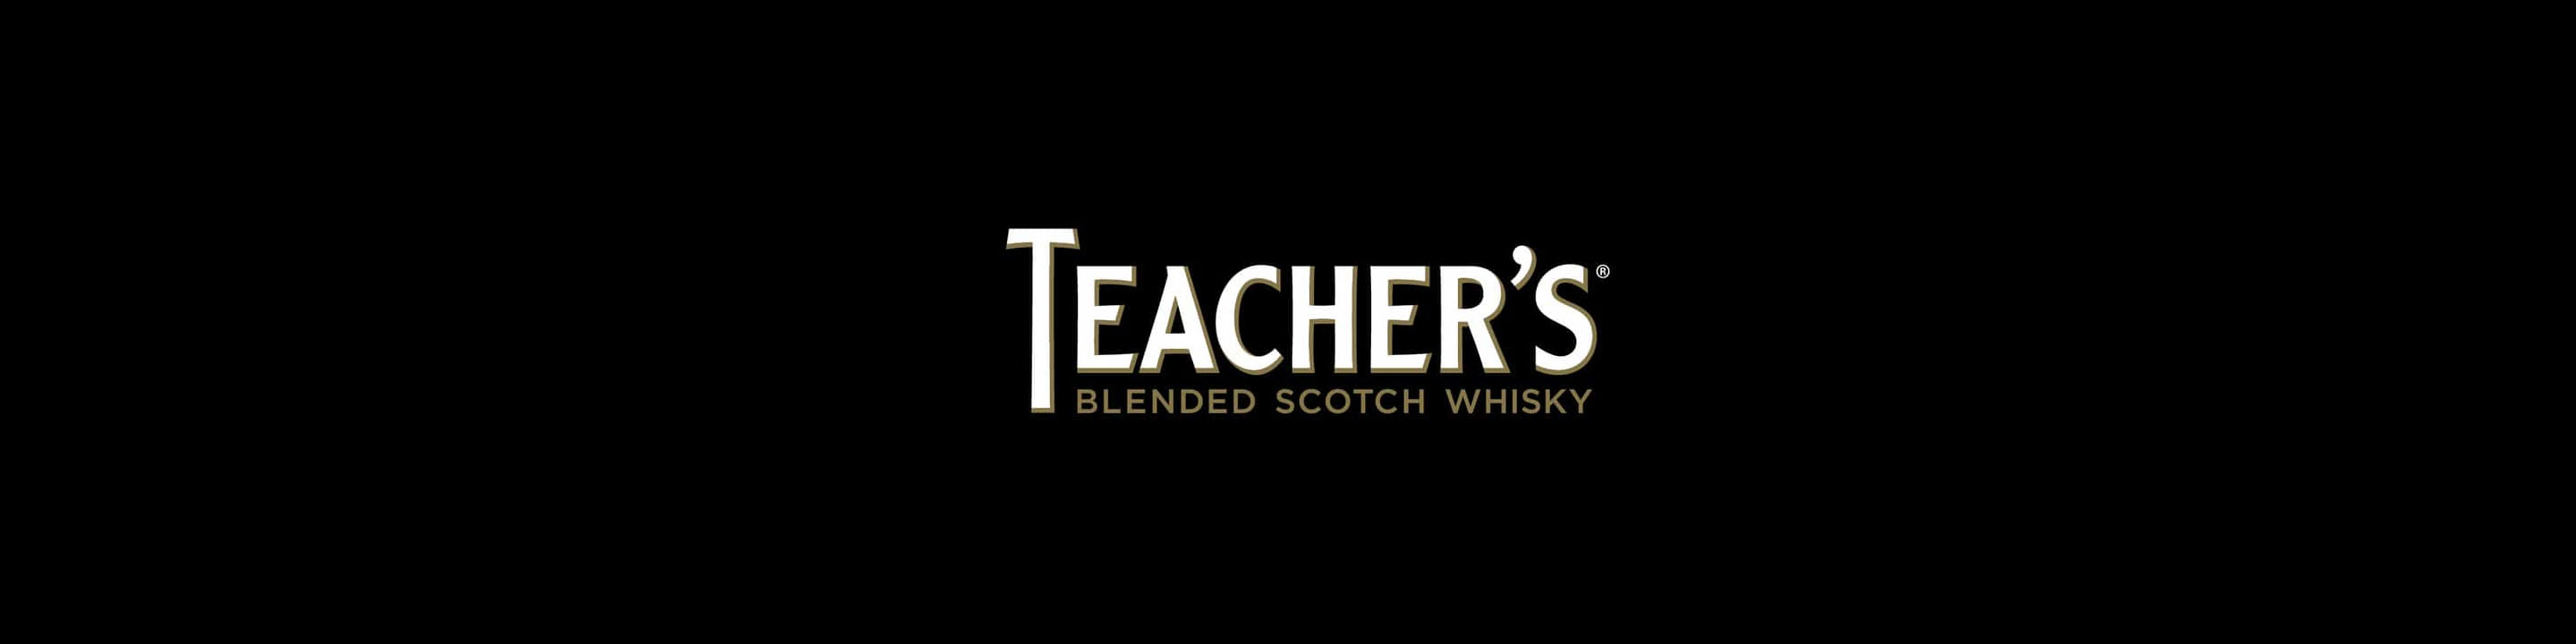 William Teacher was a man of self-belief. Over 175 years ago he perfected his famous blend with high smoky peated malt giving it a rich flavor and amber color. The heart of Teacher's comes from the Ardmore distillery. The sweet smoke rises up to flavor the barley, adding depth and character to the whisky.  Buy Teacher's online now from nearby liquor stores via Minibar Delivery.